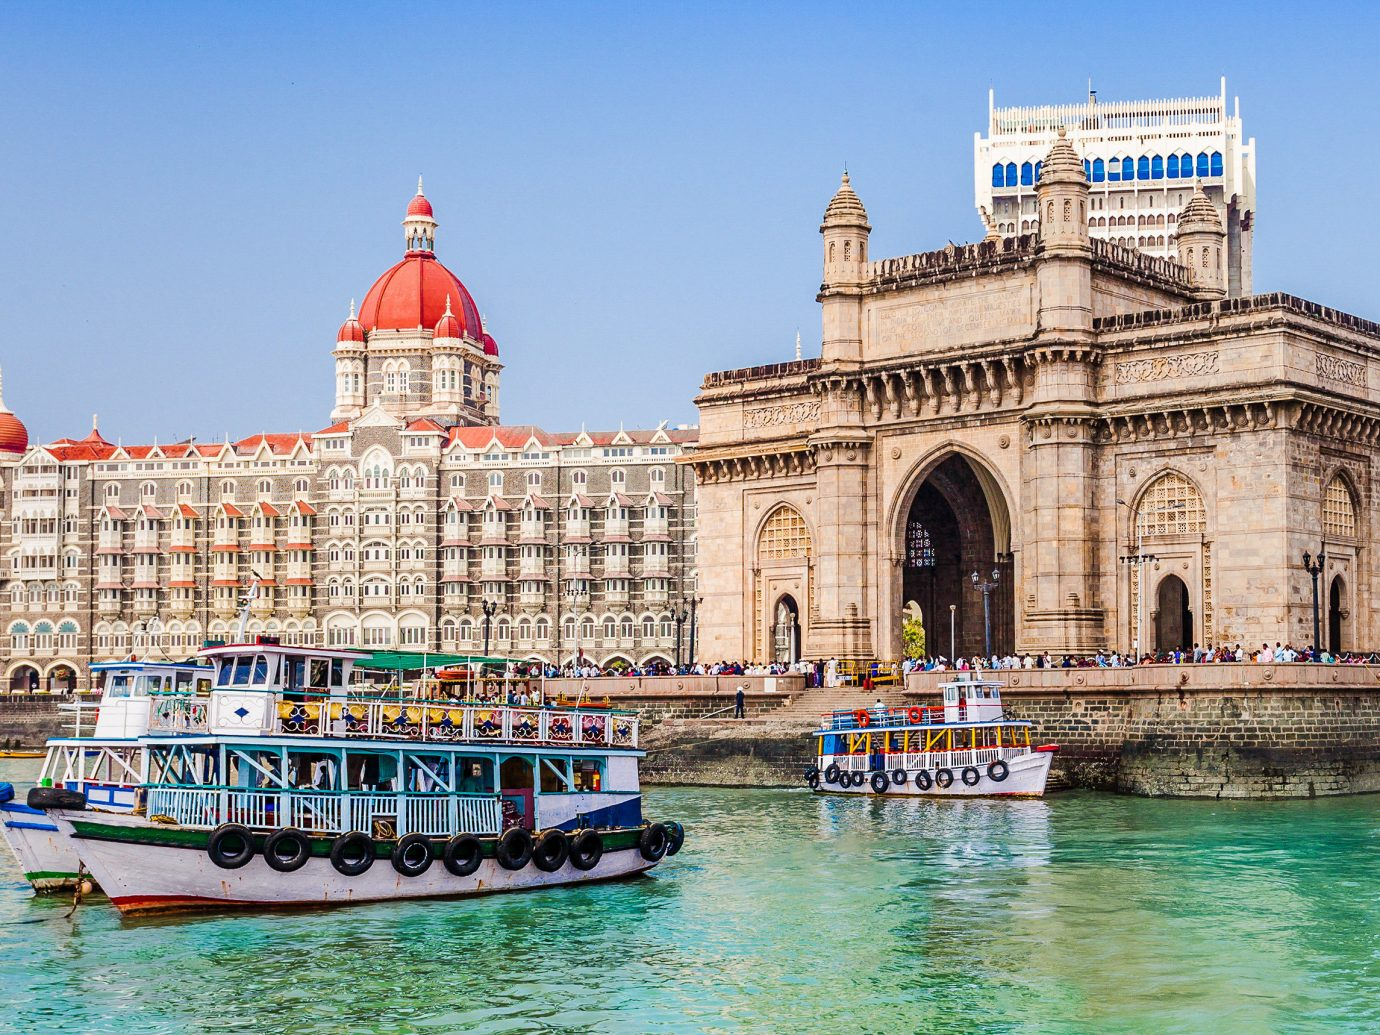 India waterway landmark water transportation tourist attraction sky palace water tourism City reflection Sea building River cityscape